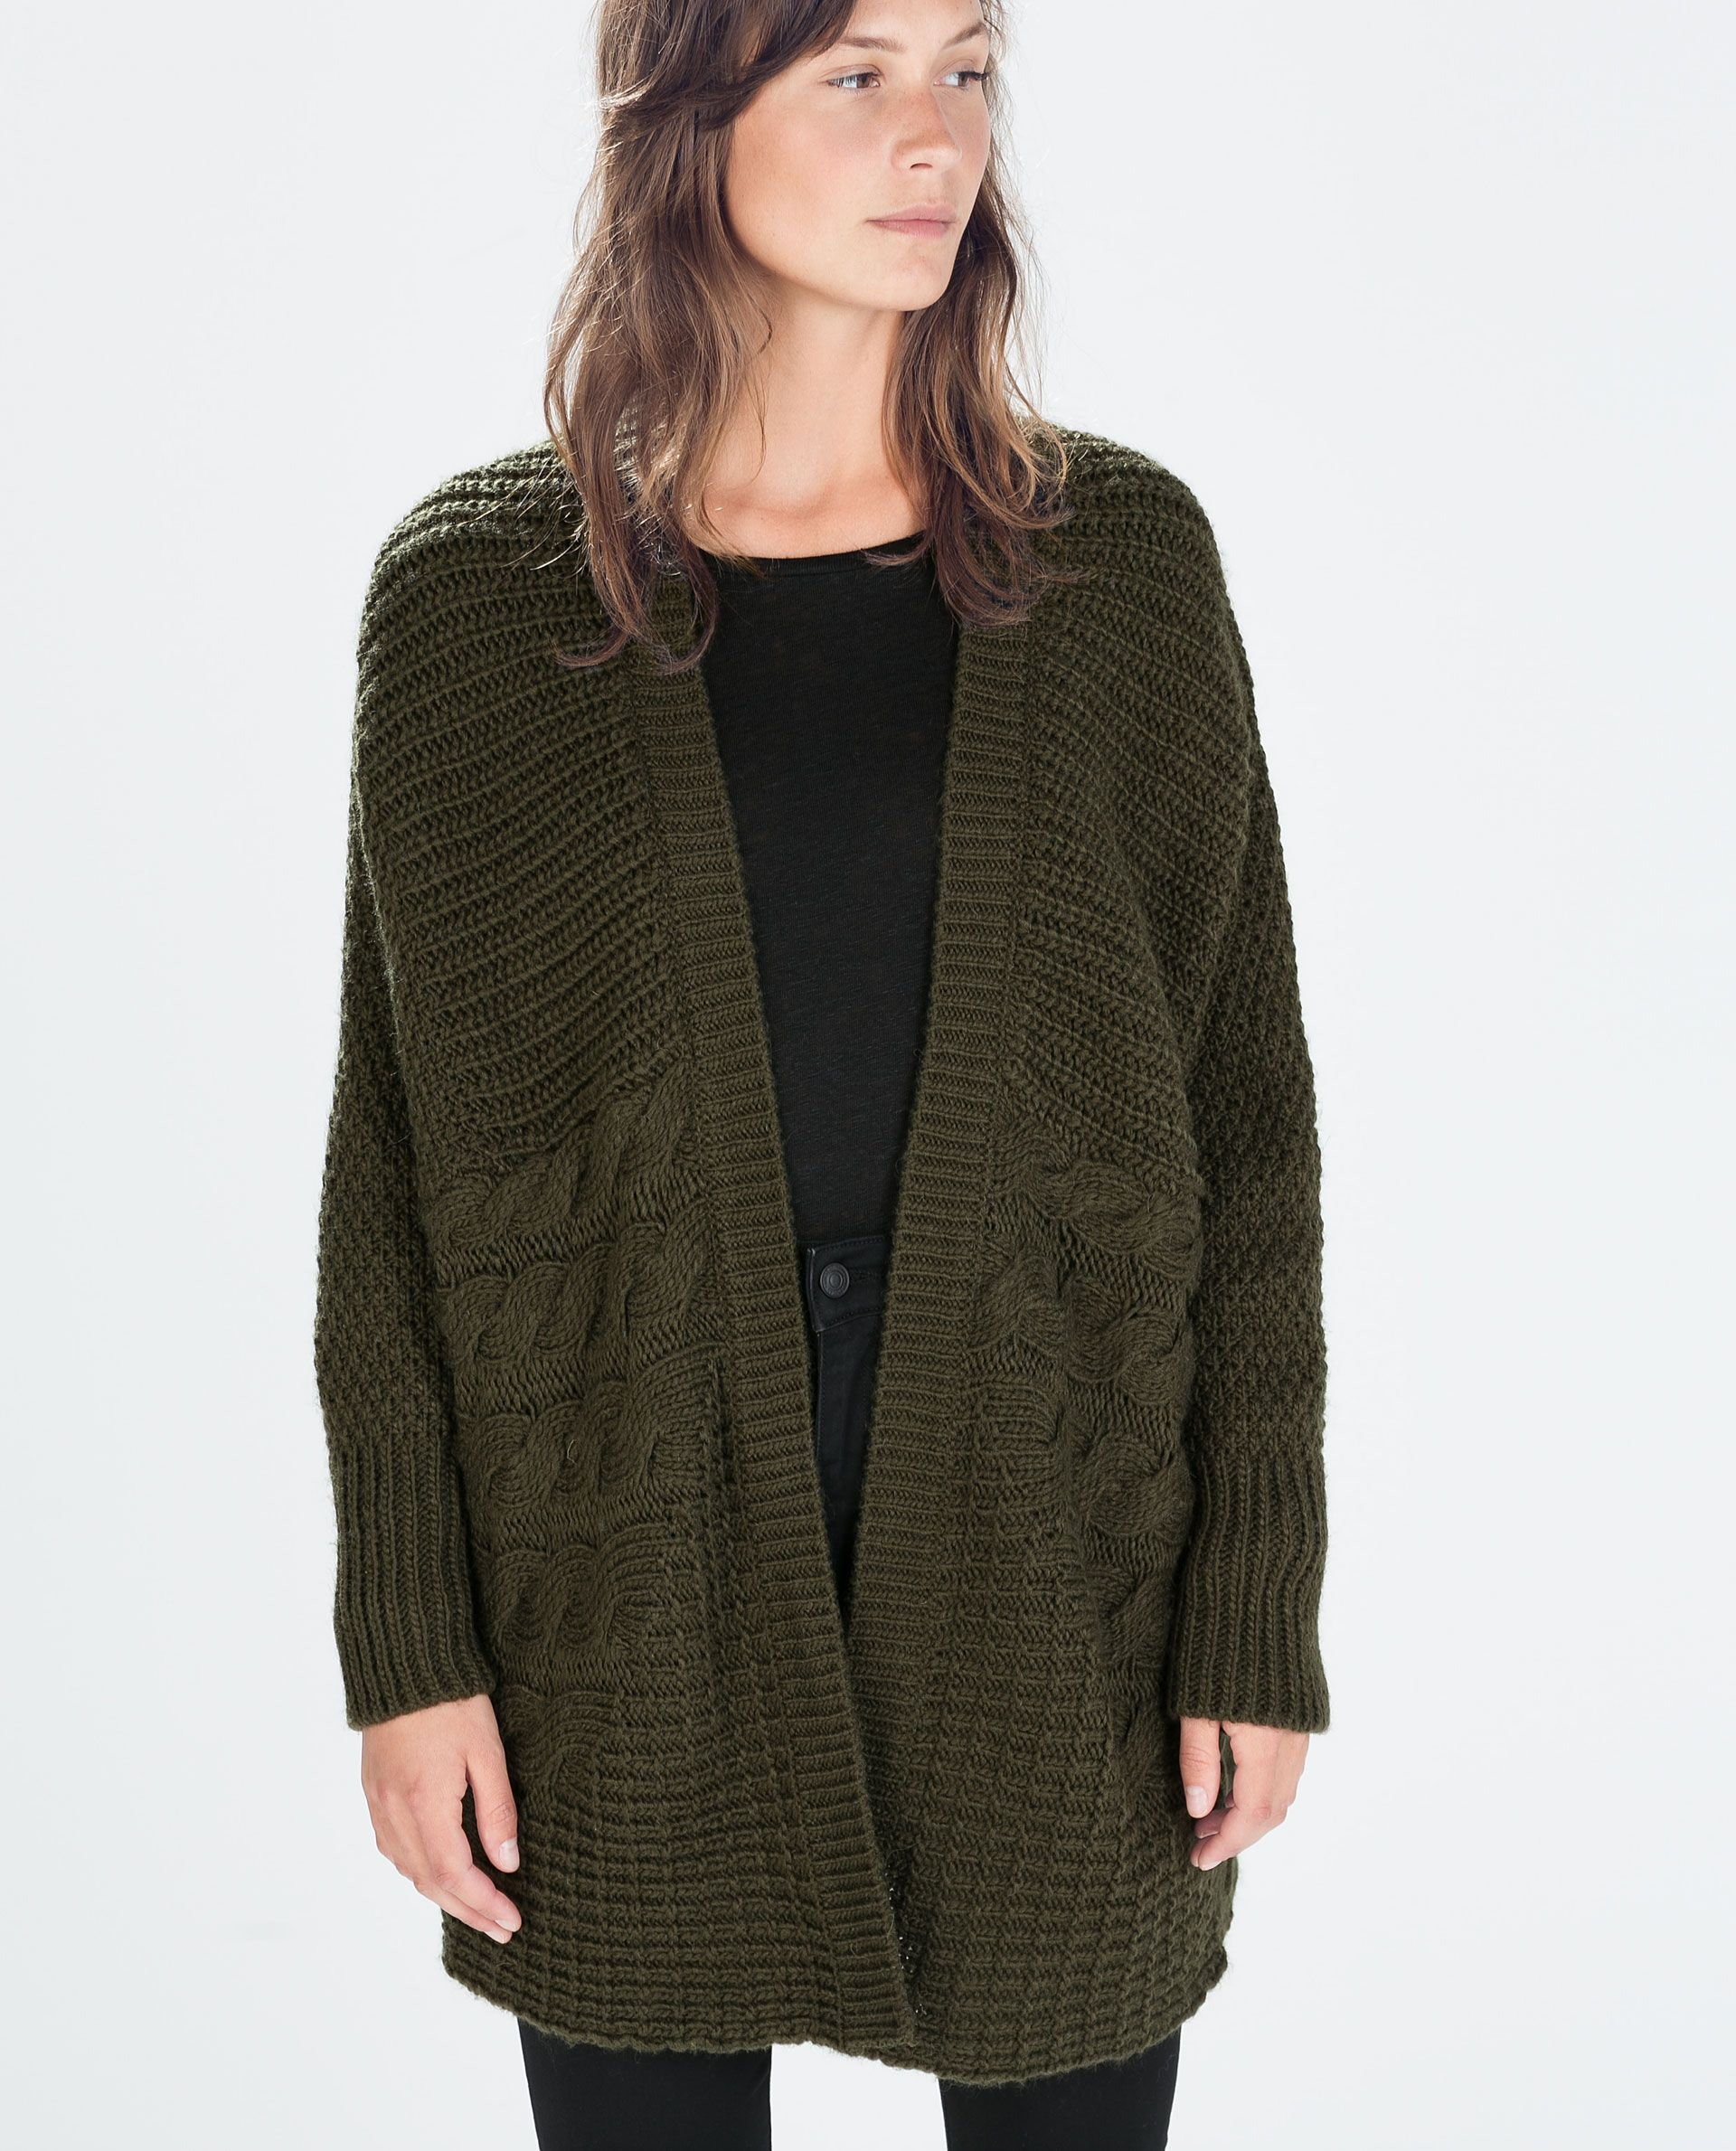 zara-khaki-oversize-cable-knit-cardigan-product-1-22148211-2 ...